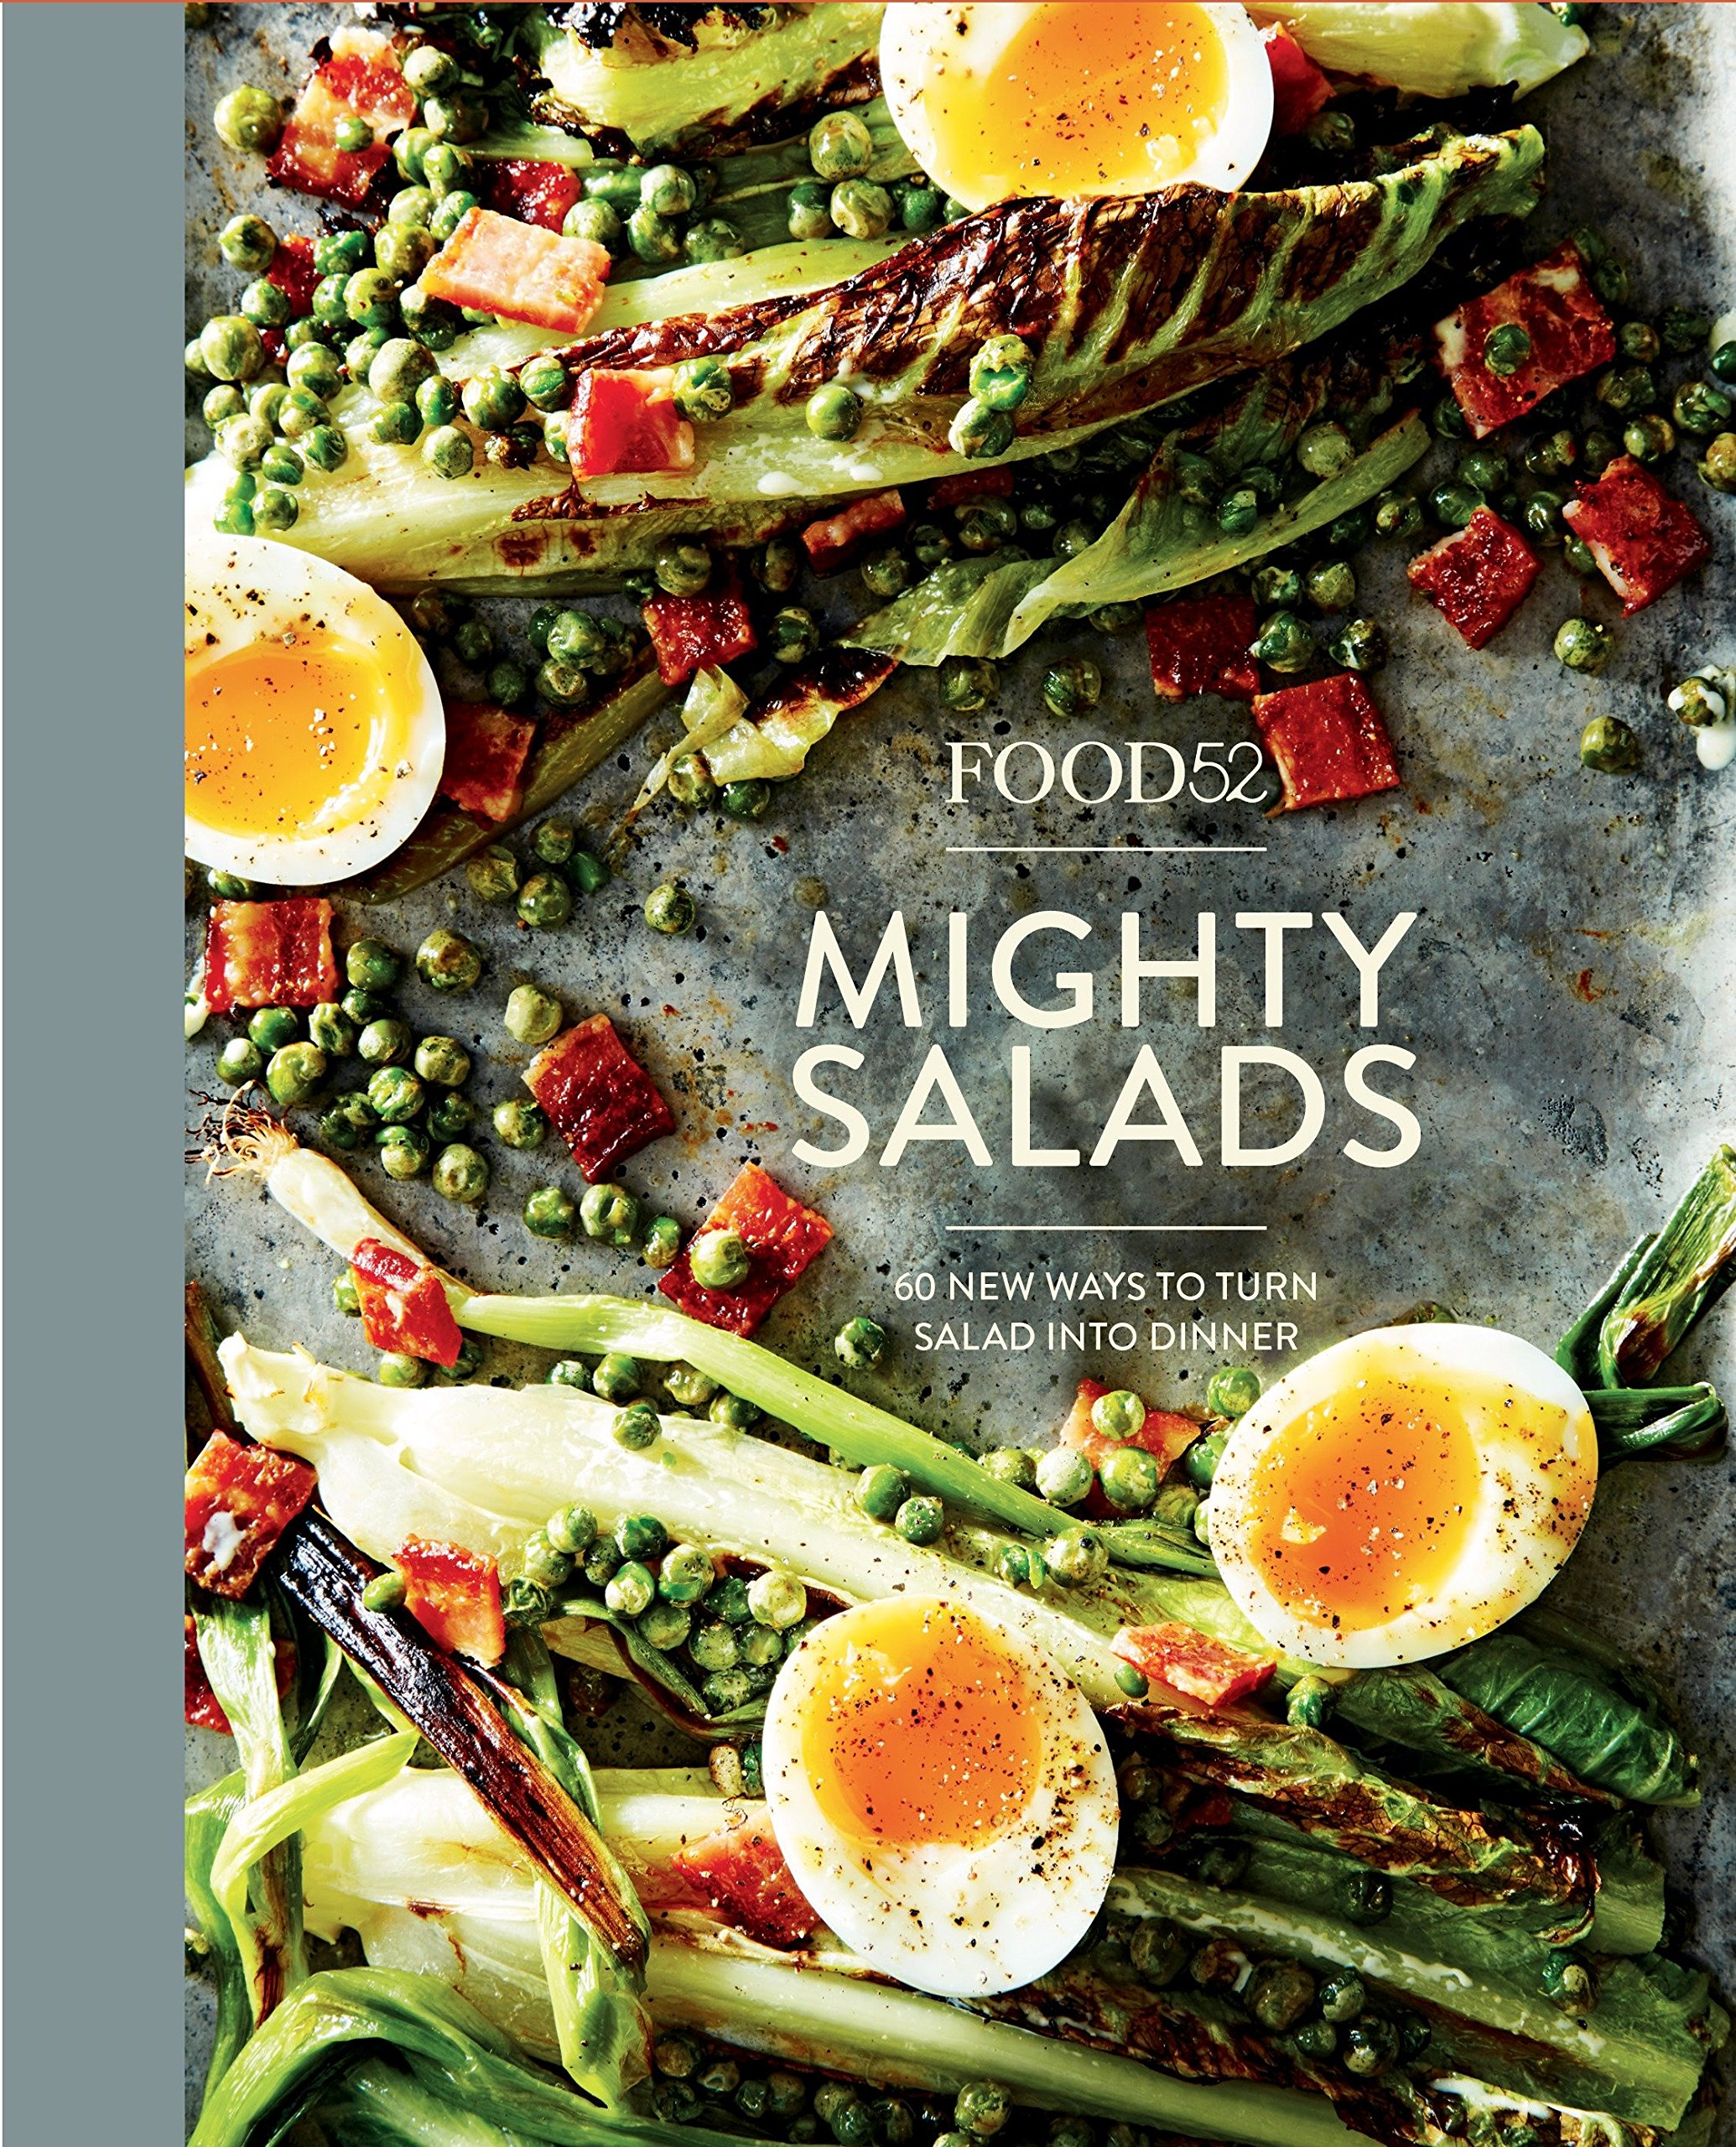 Food52 mighty salads 60 new ways to turn salad into dinner food52 food52 mighty salads 60 new ways to turn salad into dinner food52 works editors of food52 amanda hesser merrill stubbs 9780399578045 amazon forumfinder Images